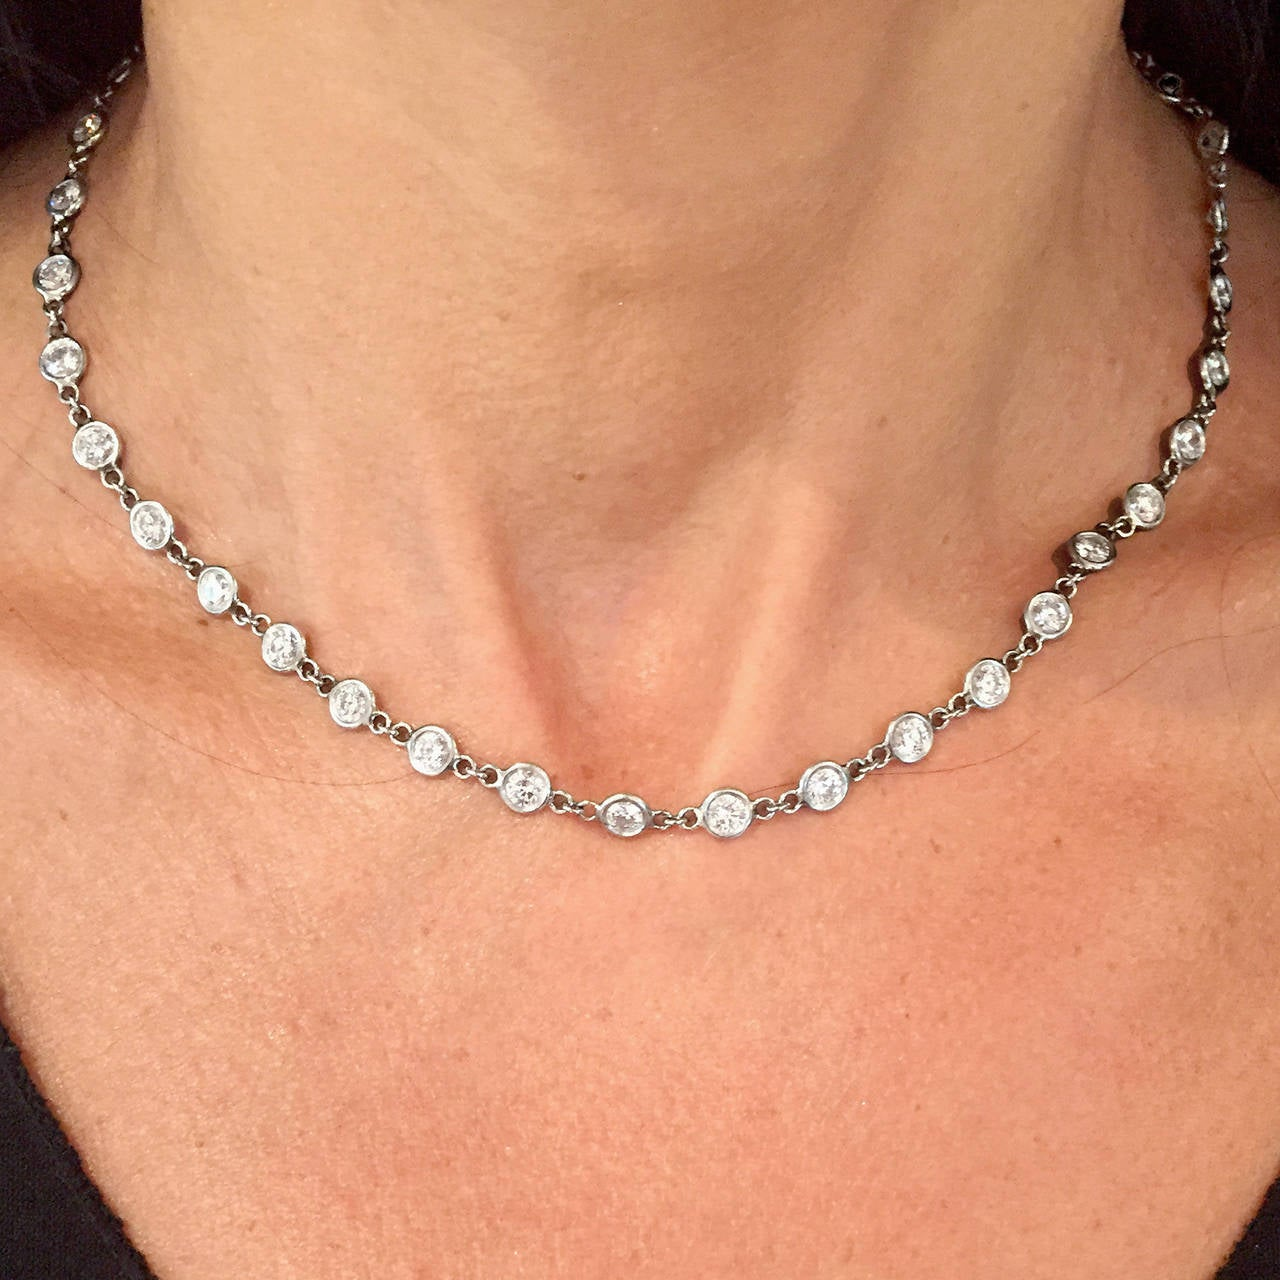 Women's Diamond Platinum 7.77 Carat Necklace For Sale